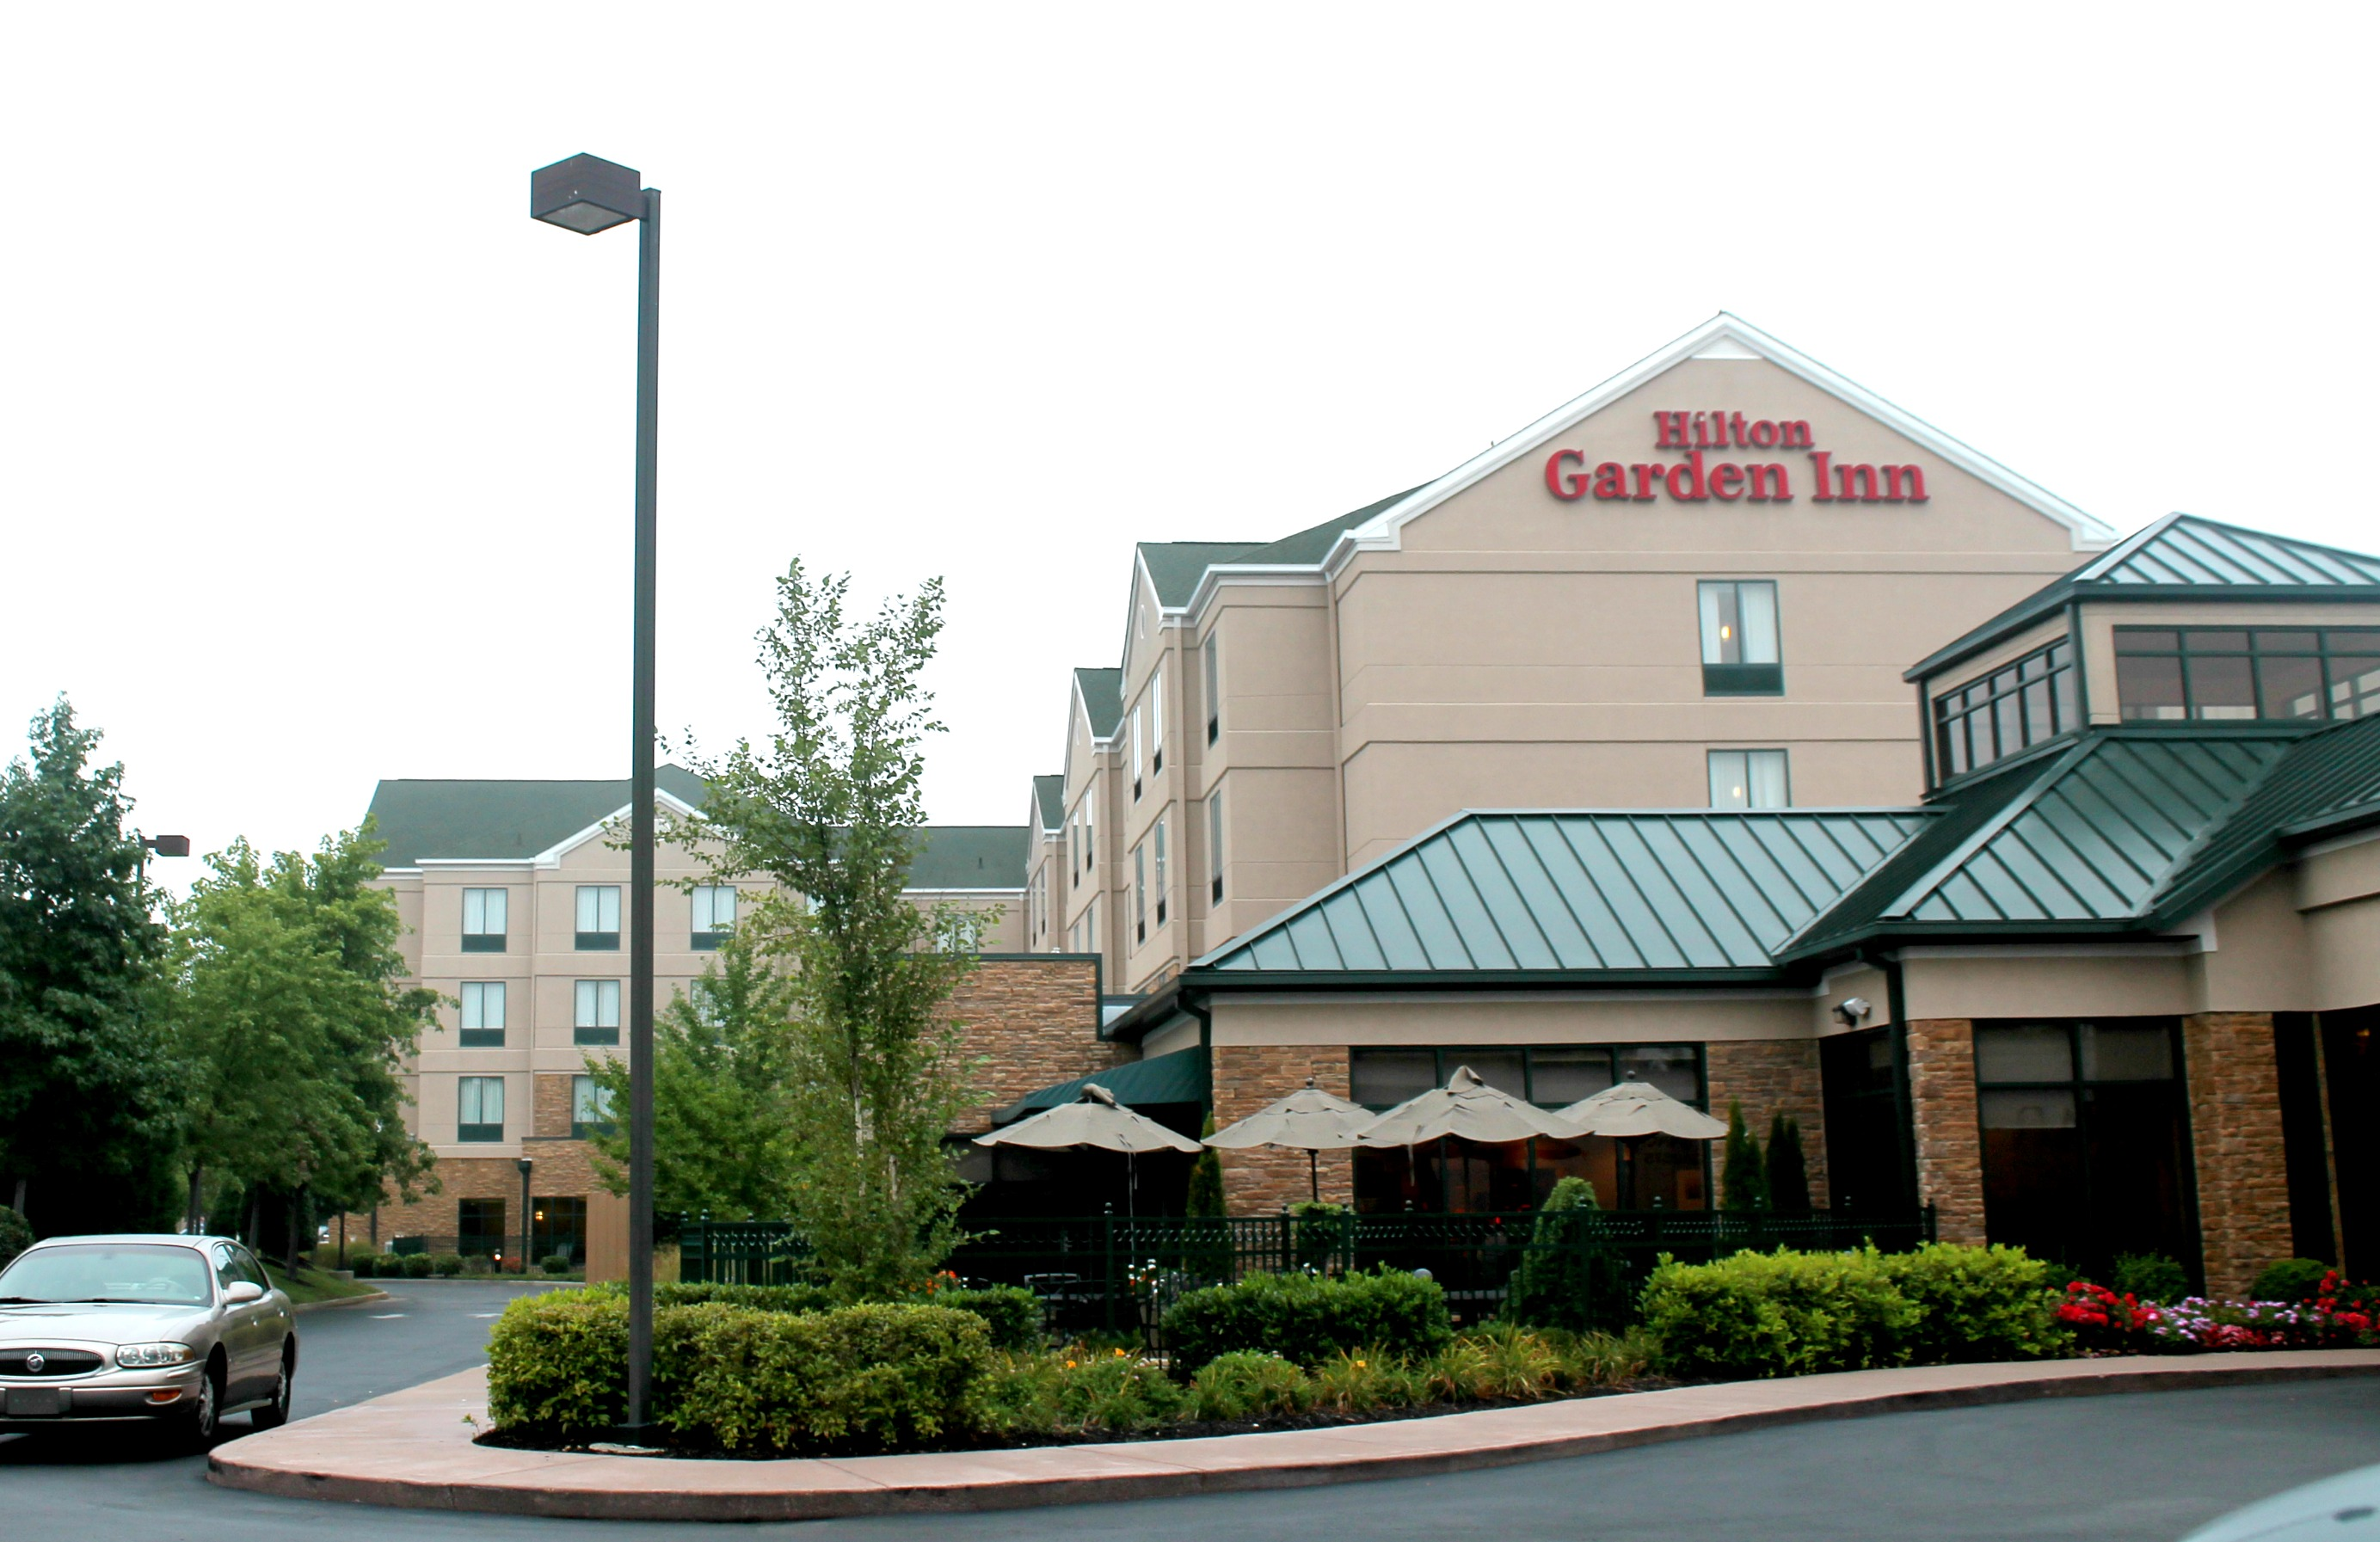 Southern Hospitality Comfort Hilton Garden Inn Bowling Green Simply Southern Mom